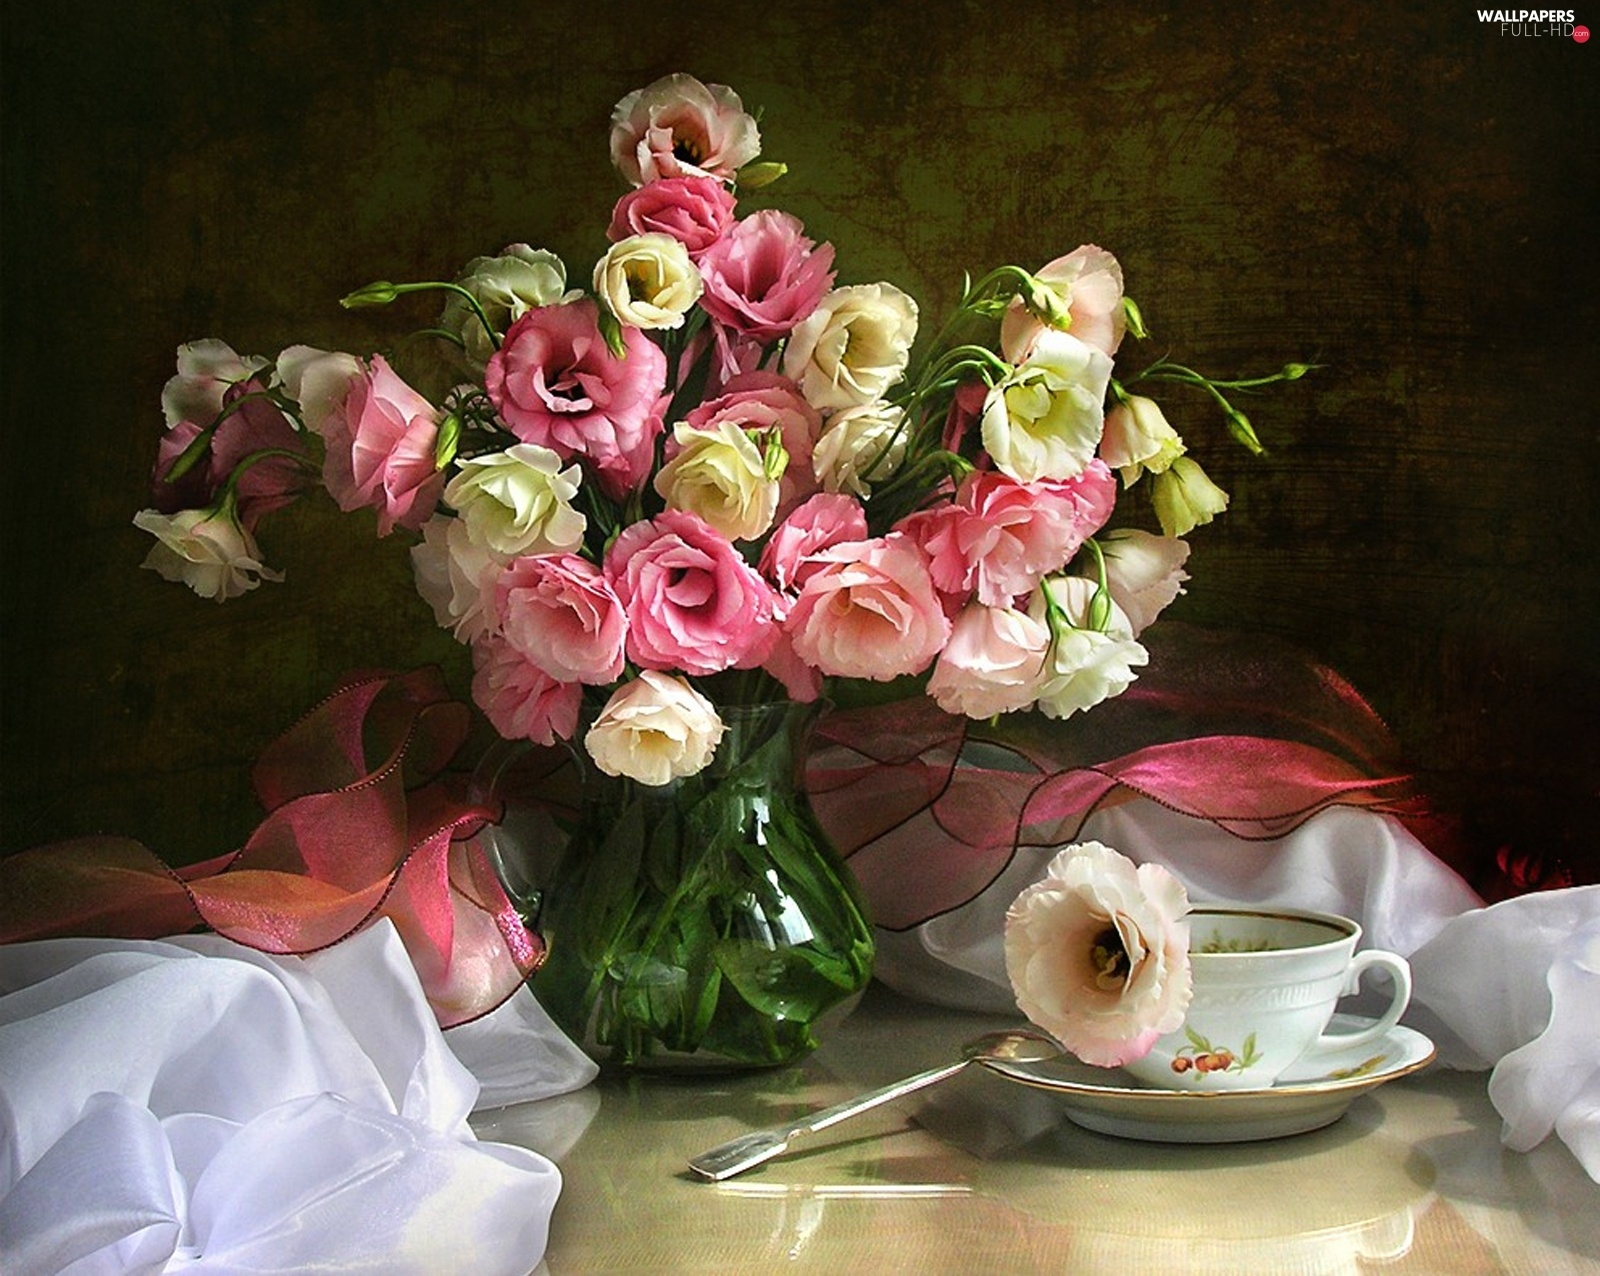 cup, Eustoma, Flowers, bouquet